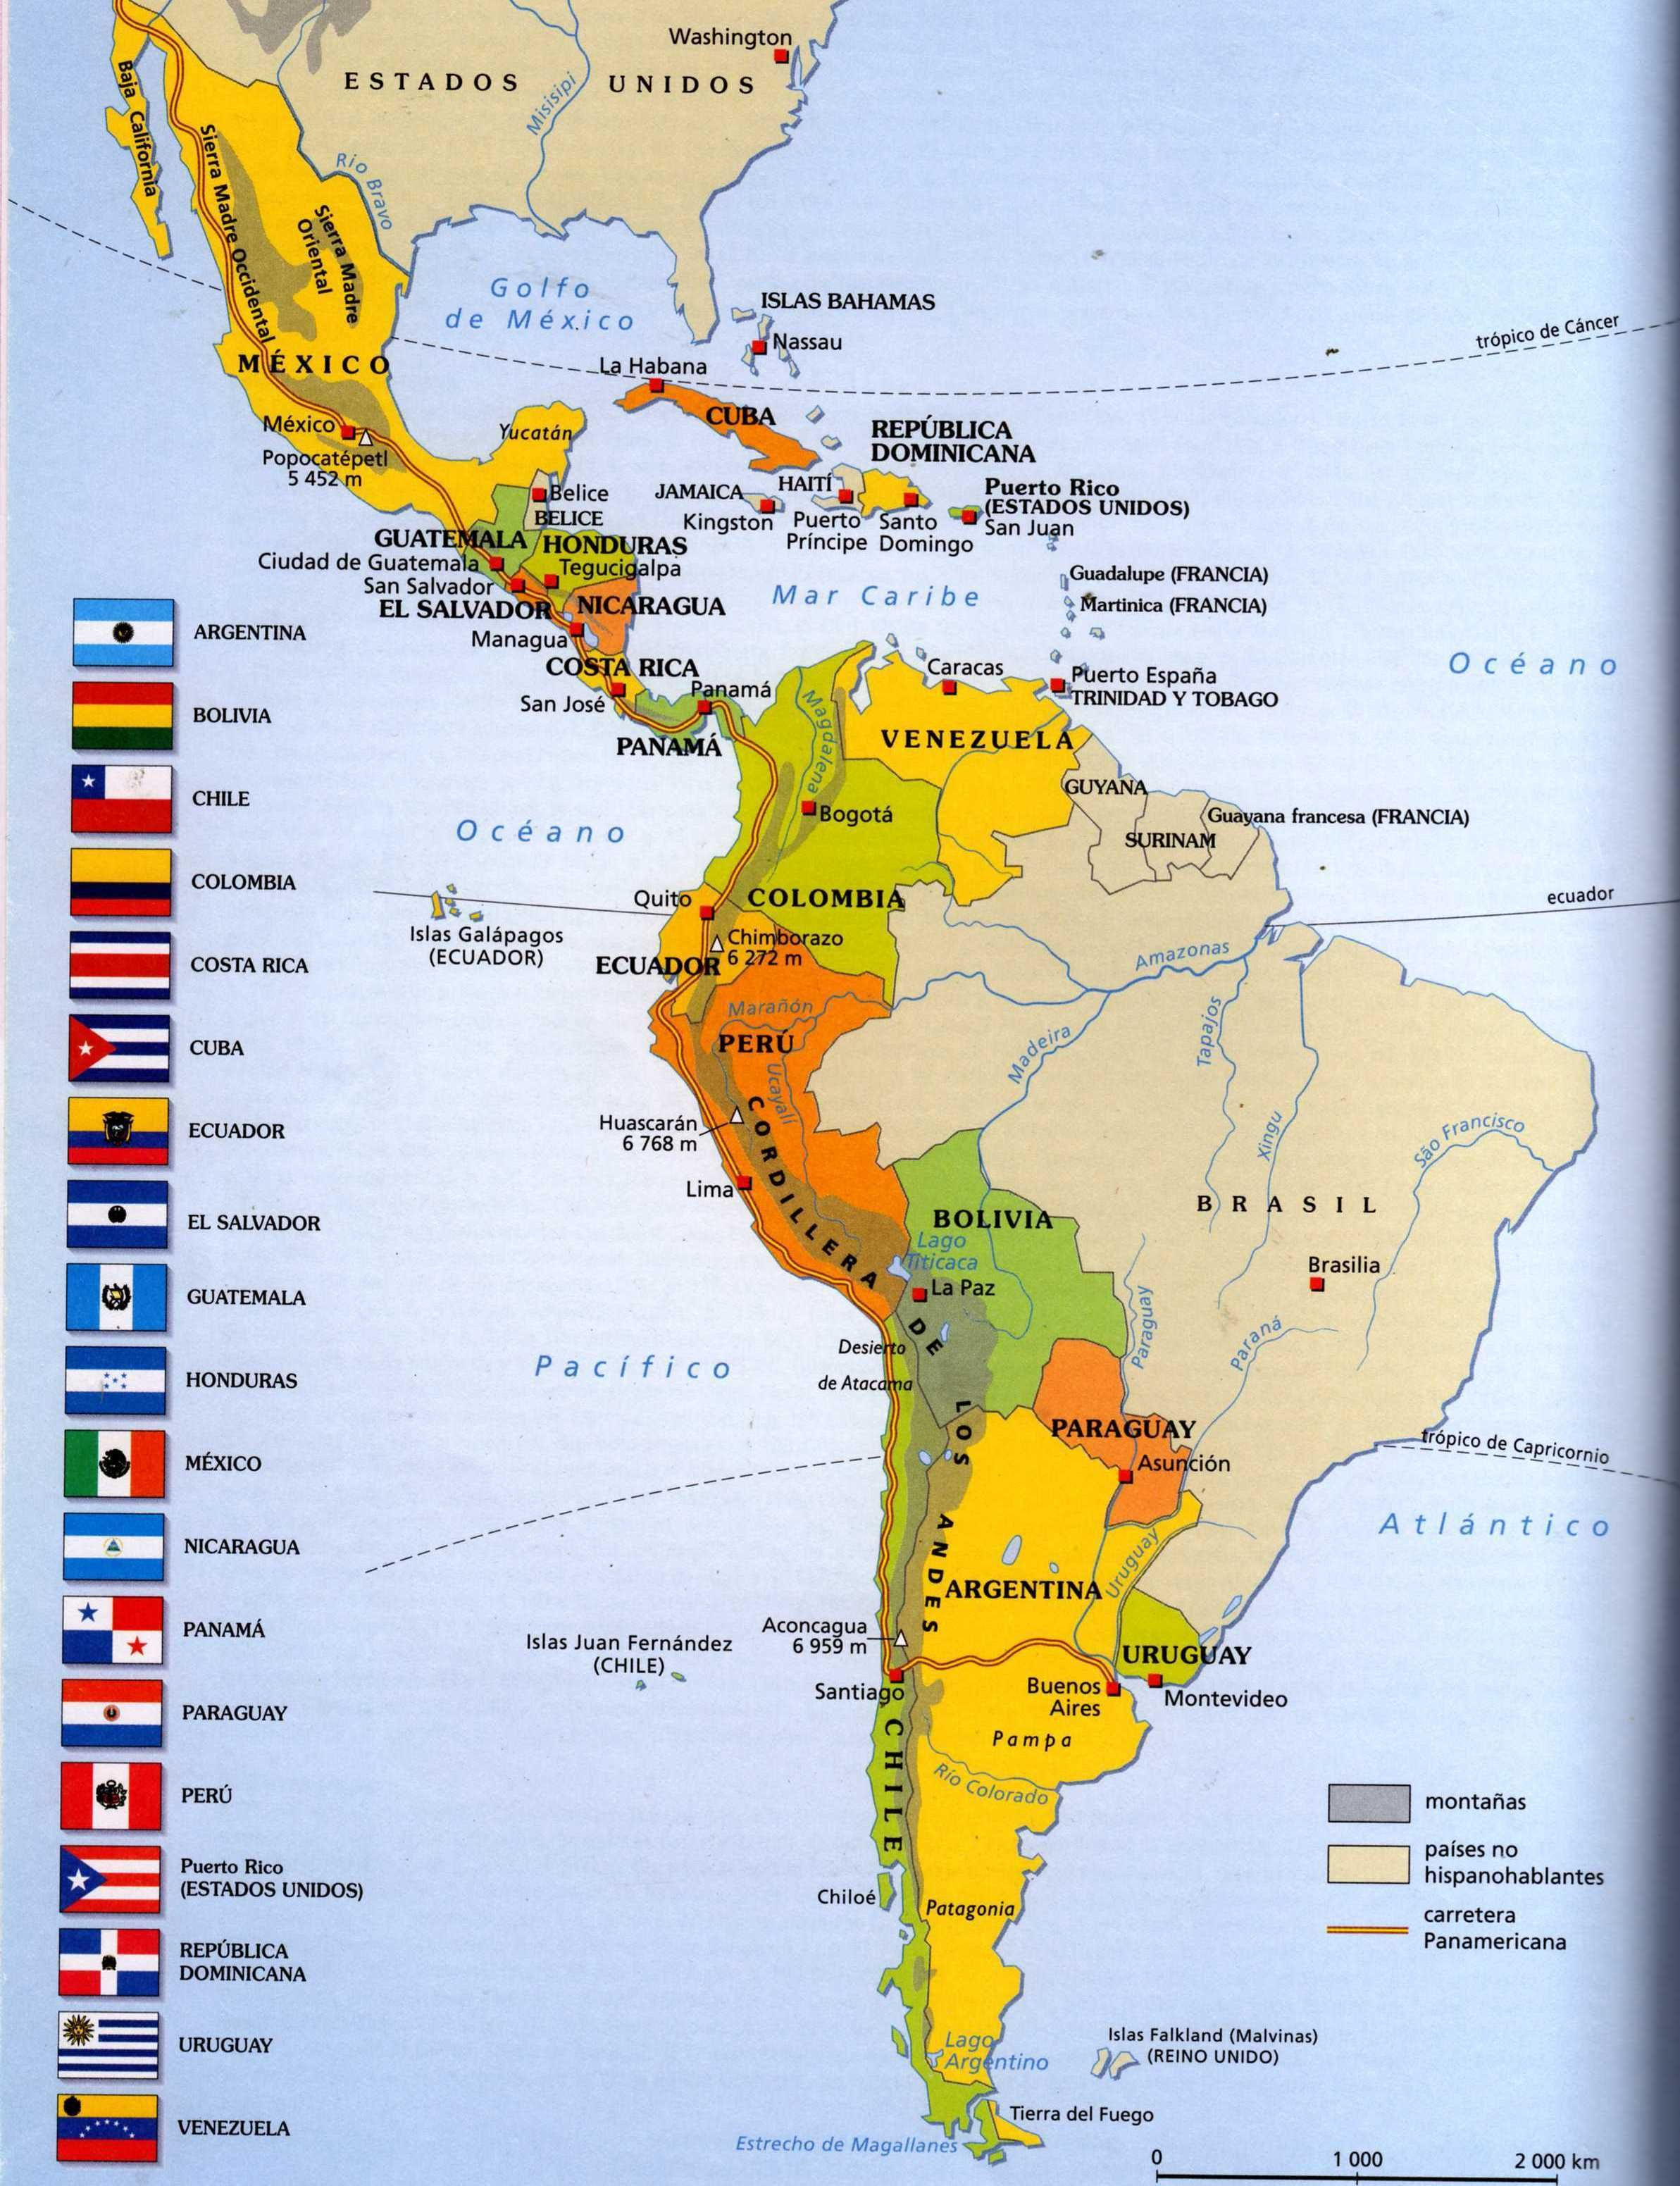 latin america change over time 1400 1650